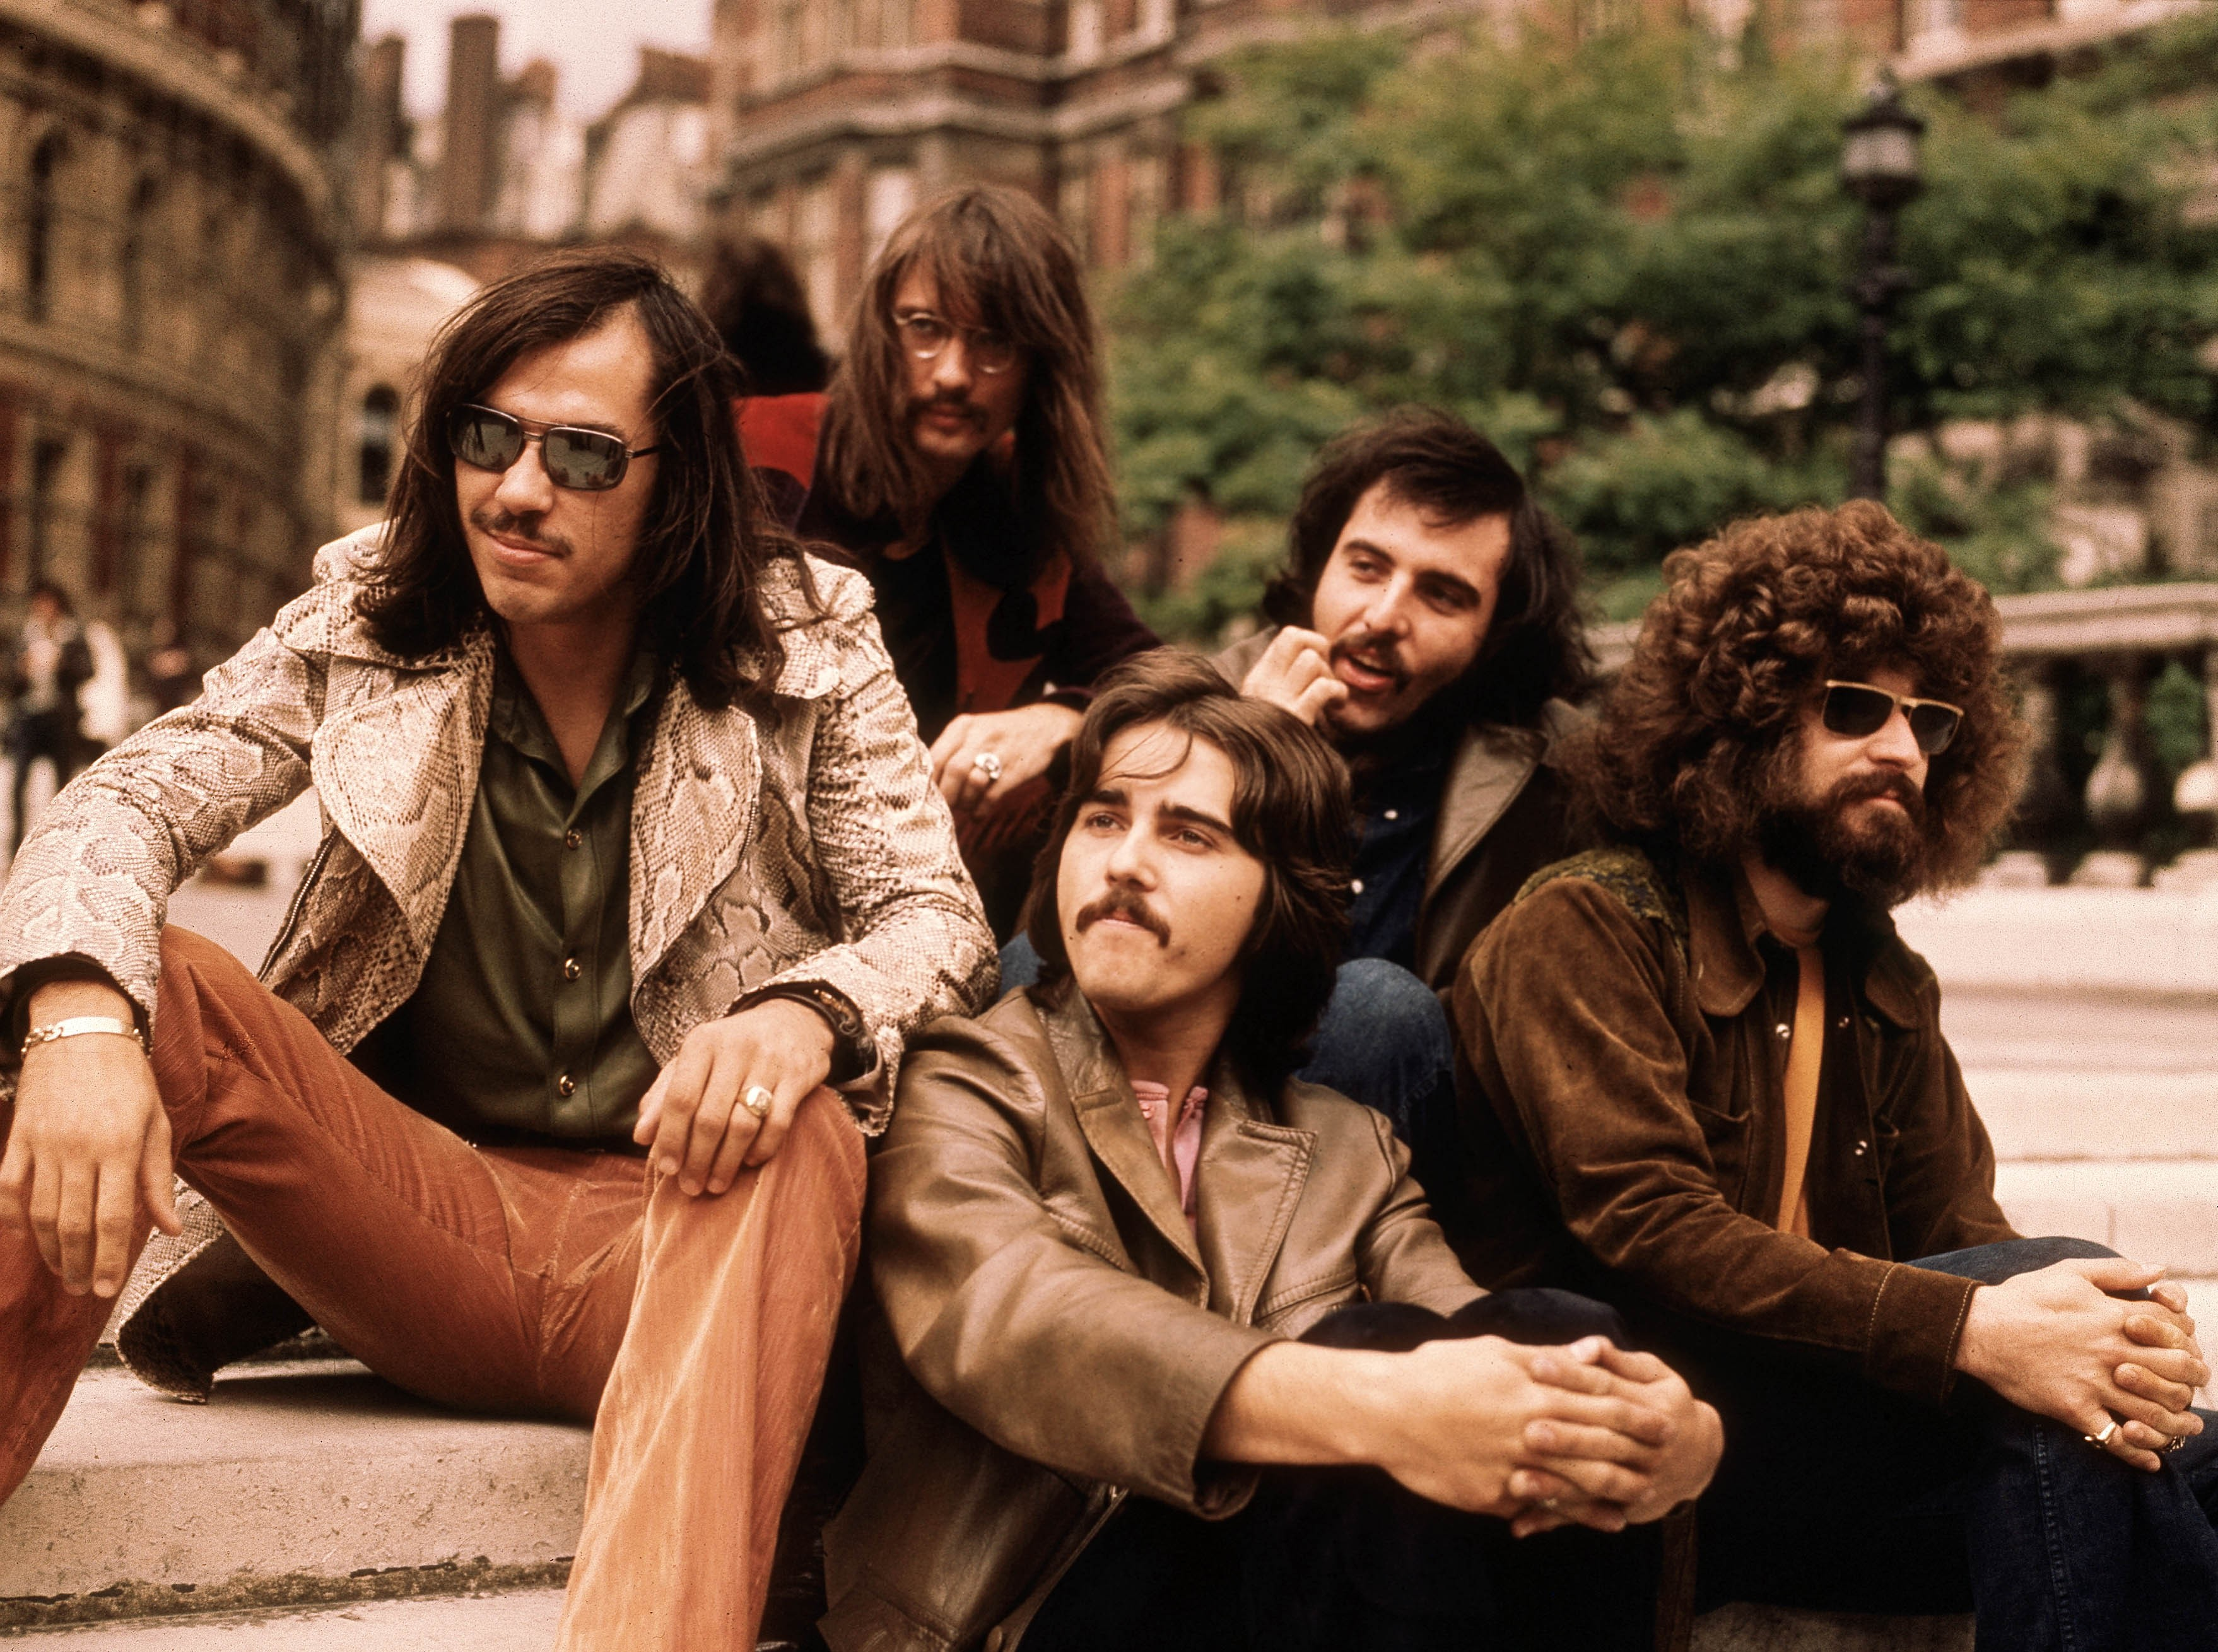 Steppenwolf-rock-and-roll-hall-of-fame-now-inducts-songs